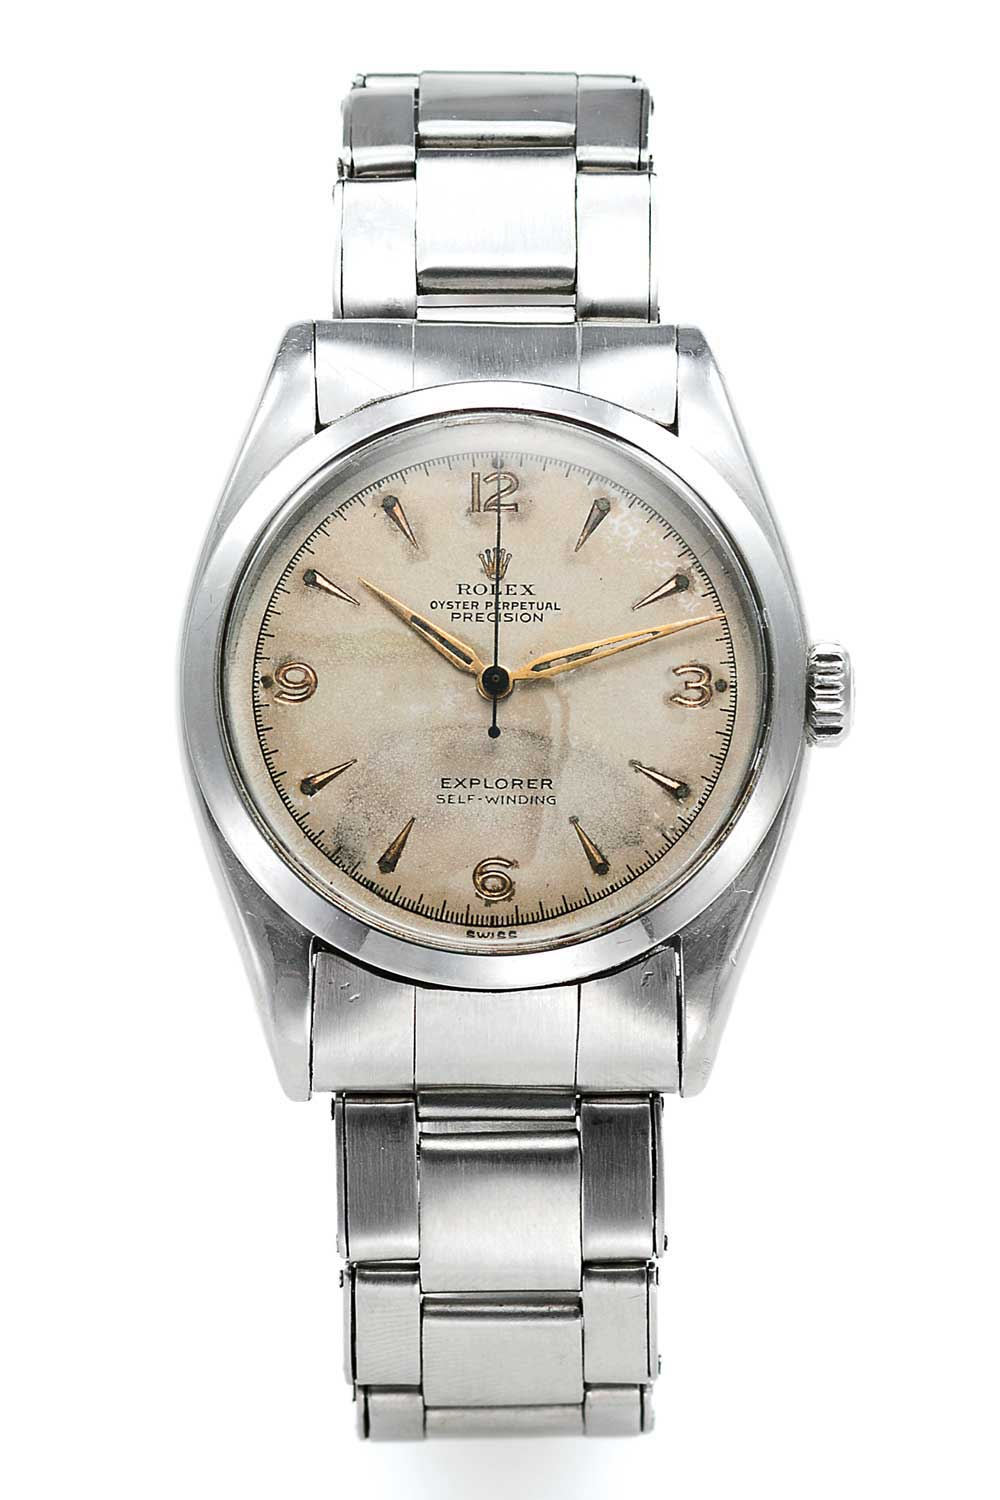 Rolex Explorer ref. 6298 with matte-silver dials. The model had the new improved 'brevet +' 6mm screw down crown.